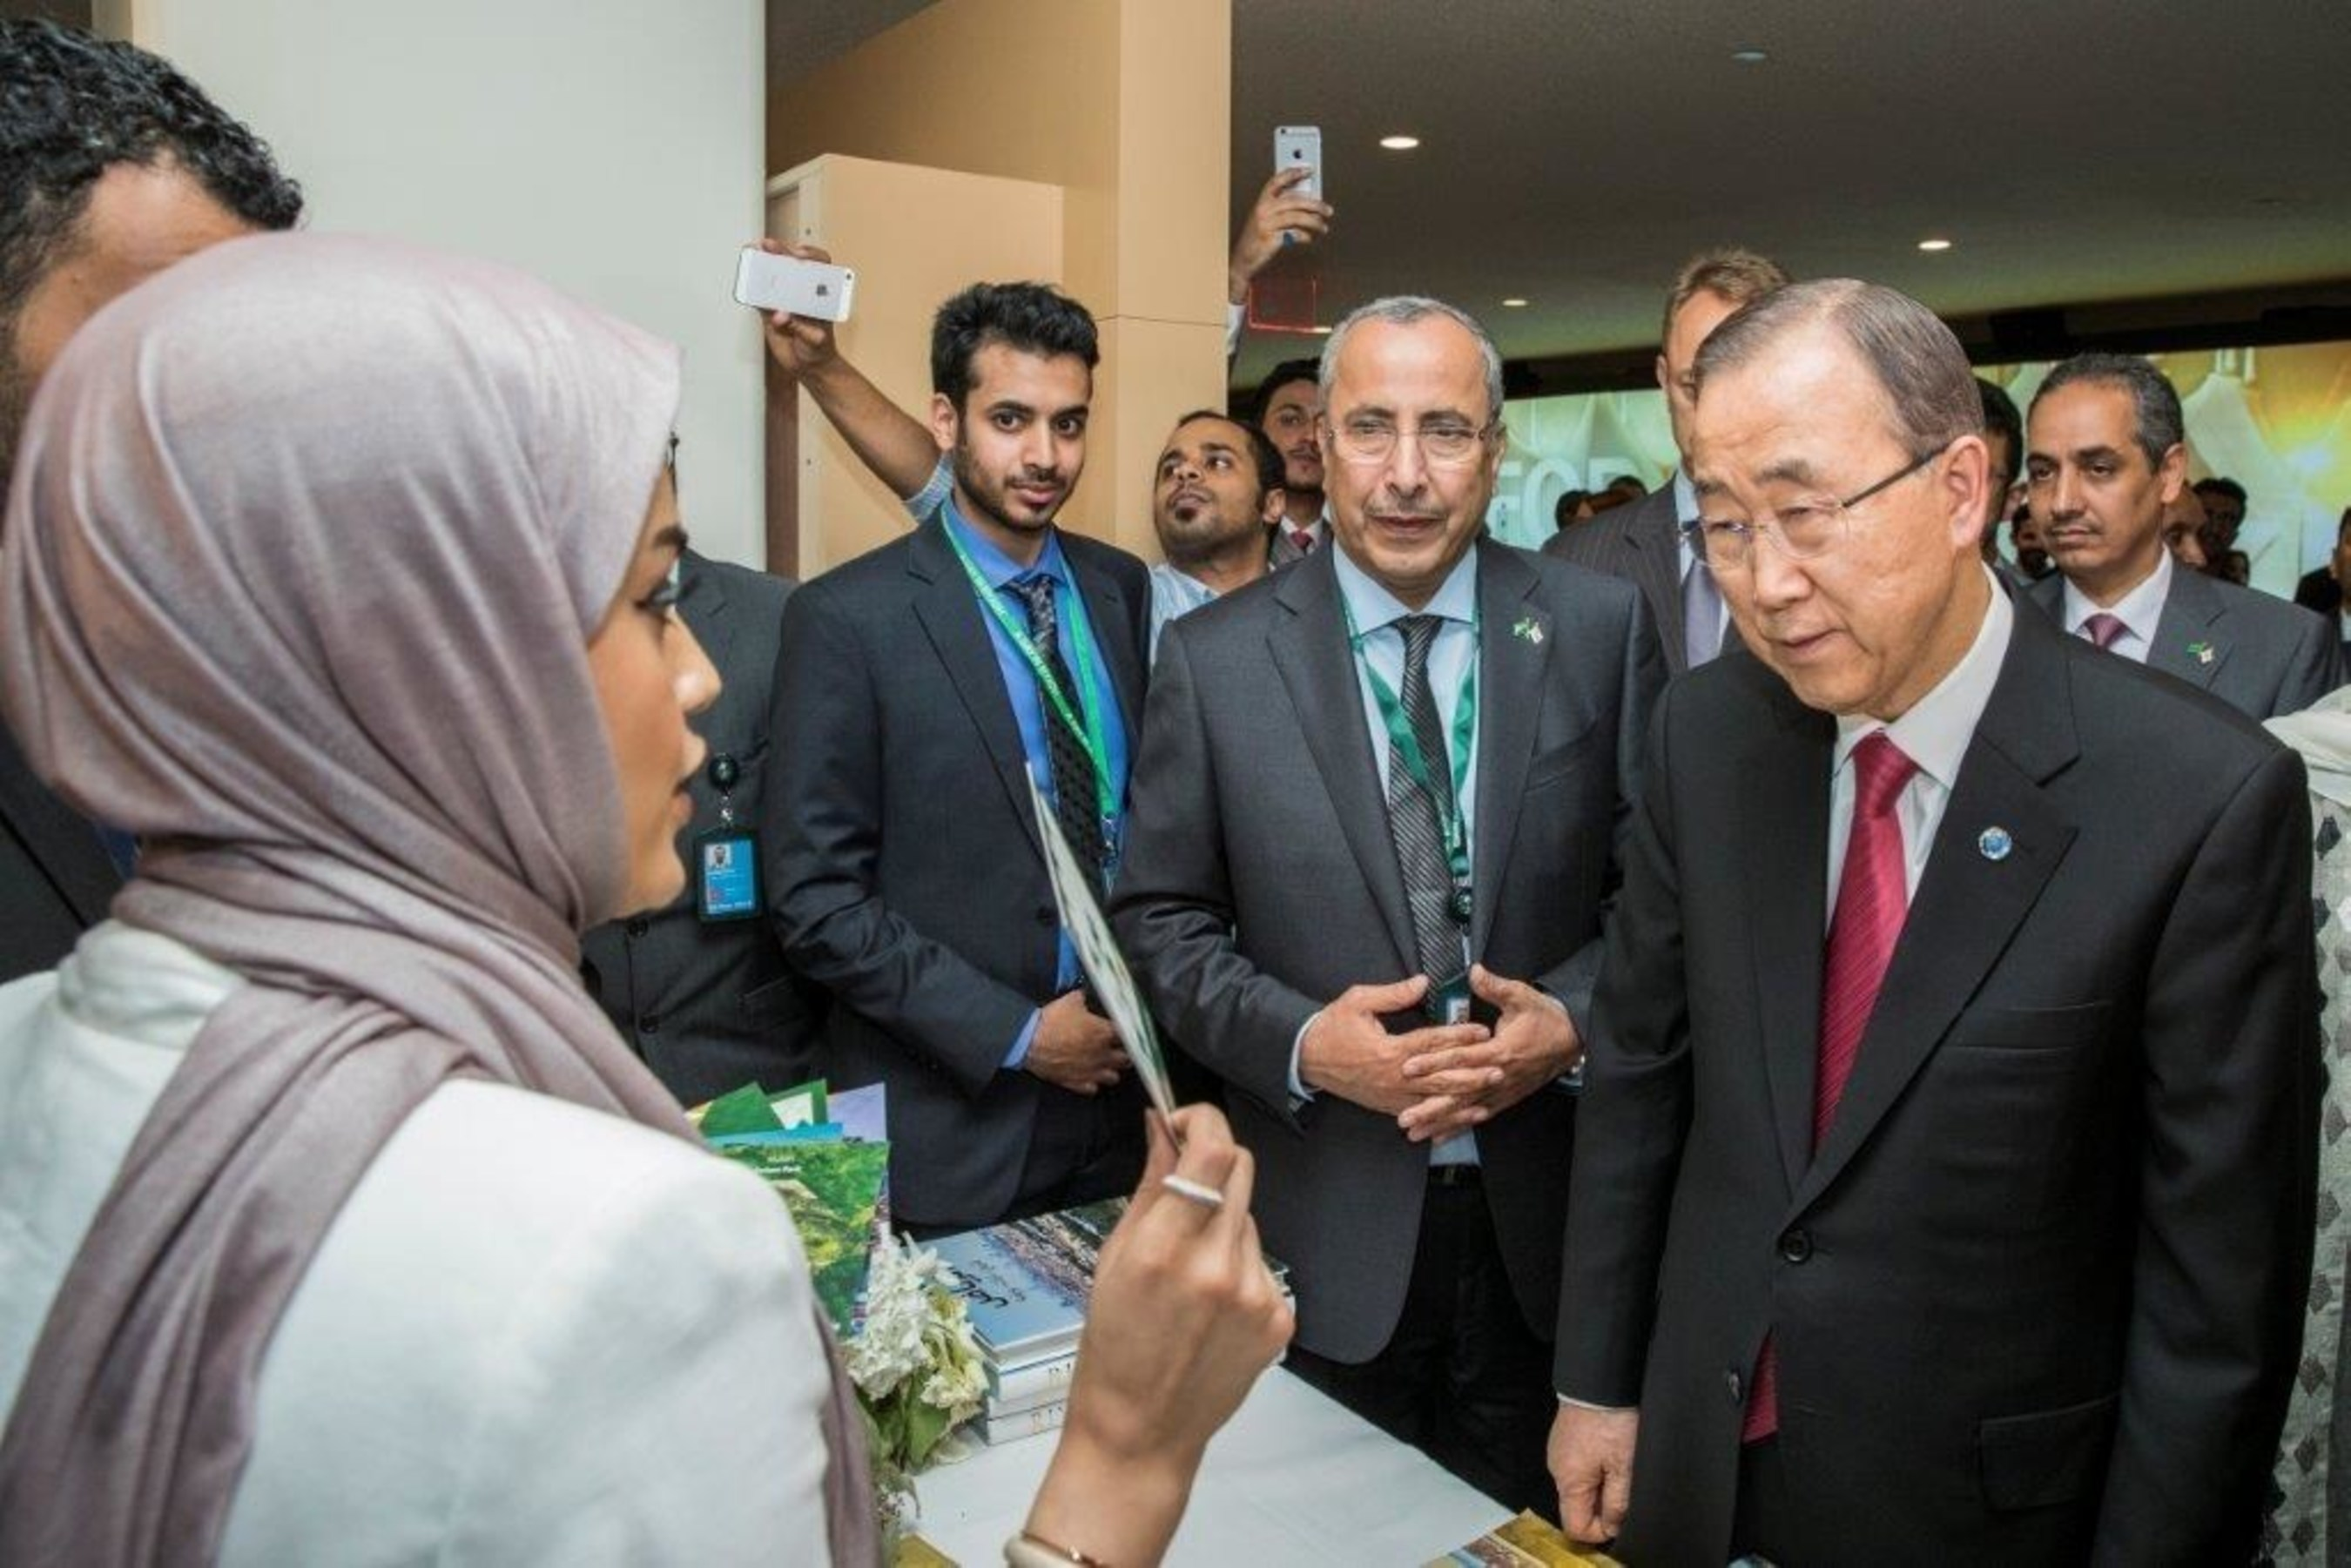 United Nations Secretary General Ban Ki-moon (R) and Mayor of Riyadh and President of the Arriyadh Development Authority H.E. Ibrahim al Sultan (L) tour the Interactive Virtual Reality Display of Riyadh past, present and future at the United Nations on Friday September 30th